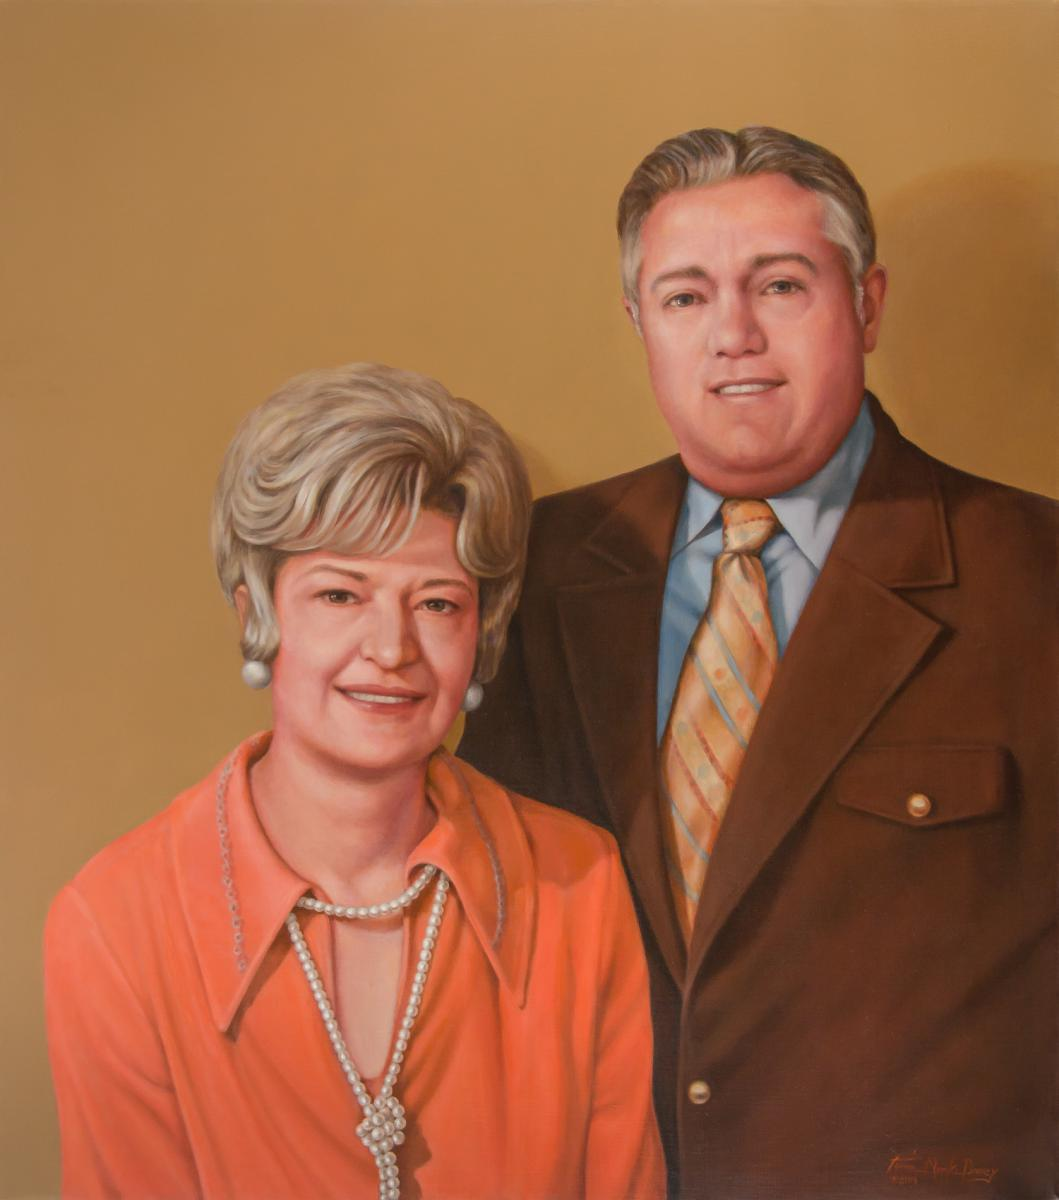 Ruth and George Culver Portrait